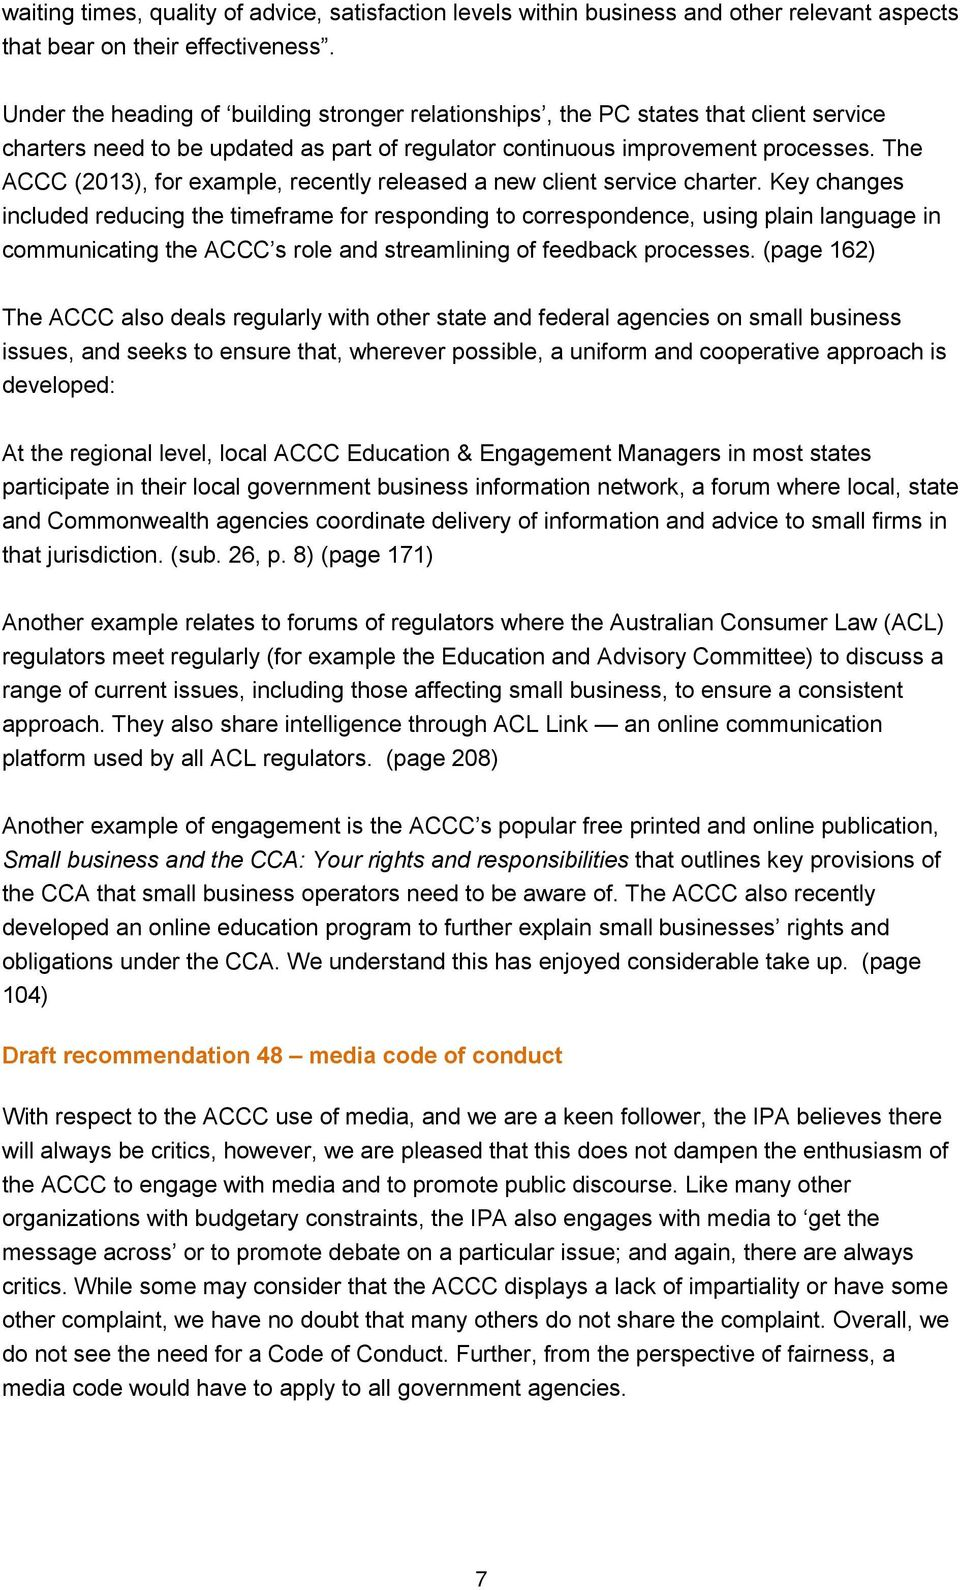 The ACCC (2013), for example, recently released a new client service charter.